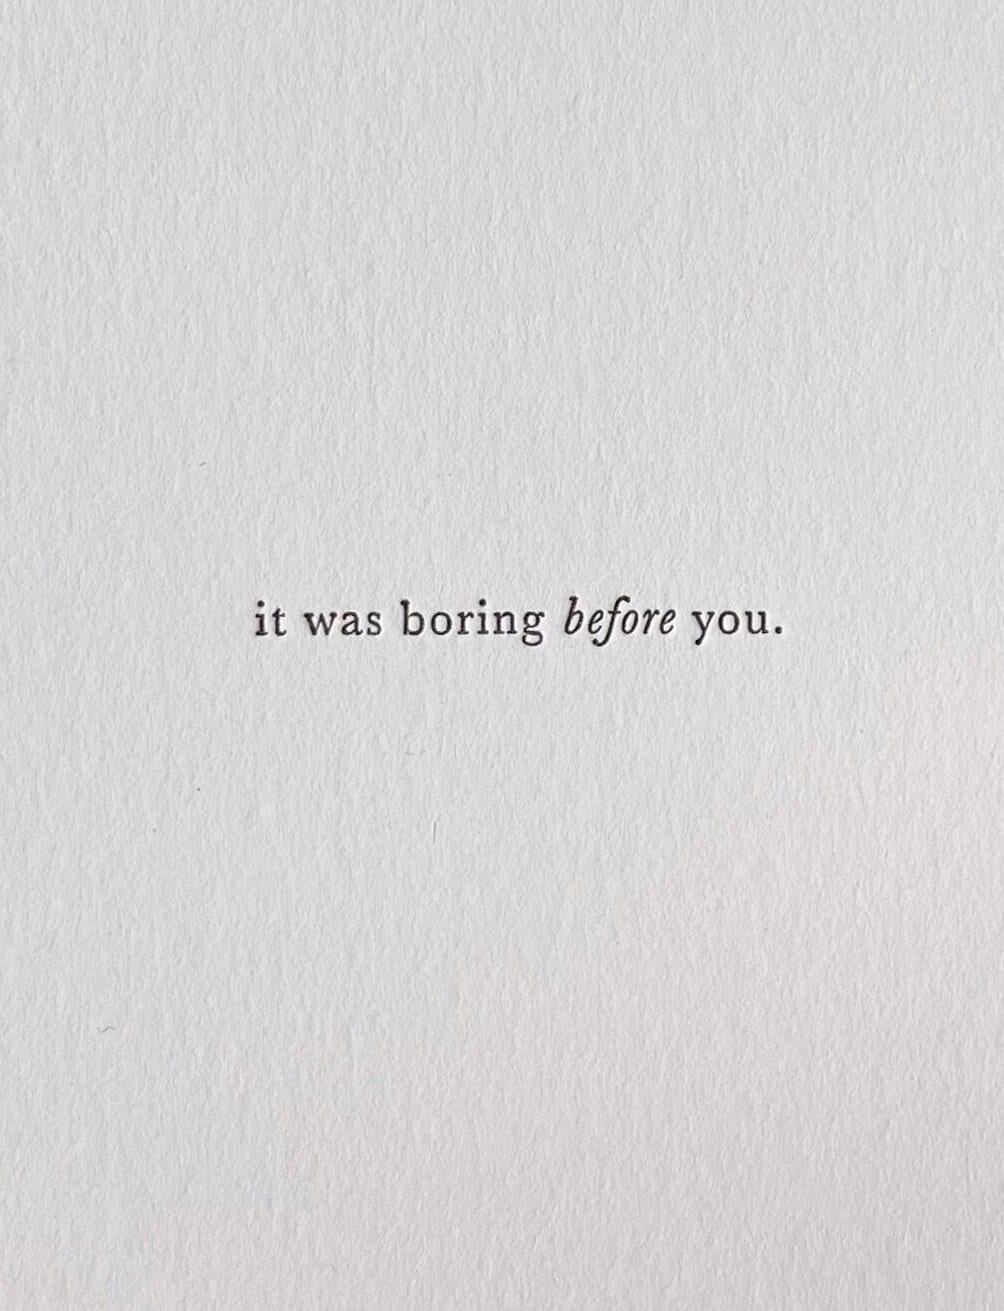 It was boring before you